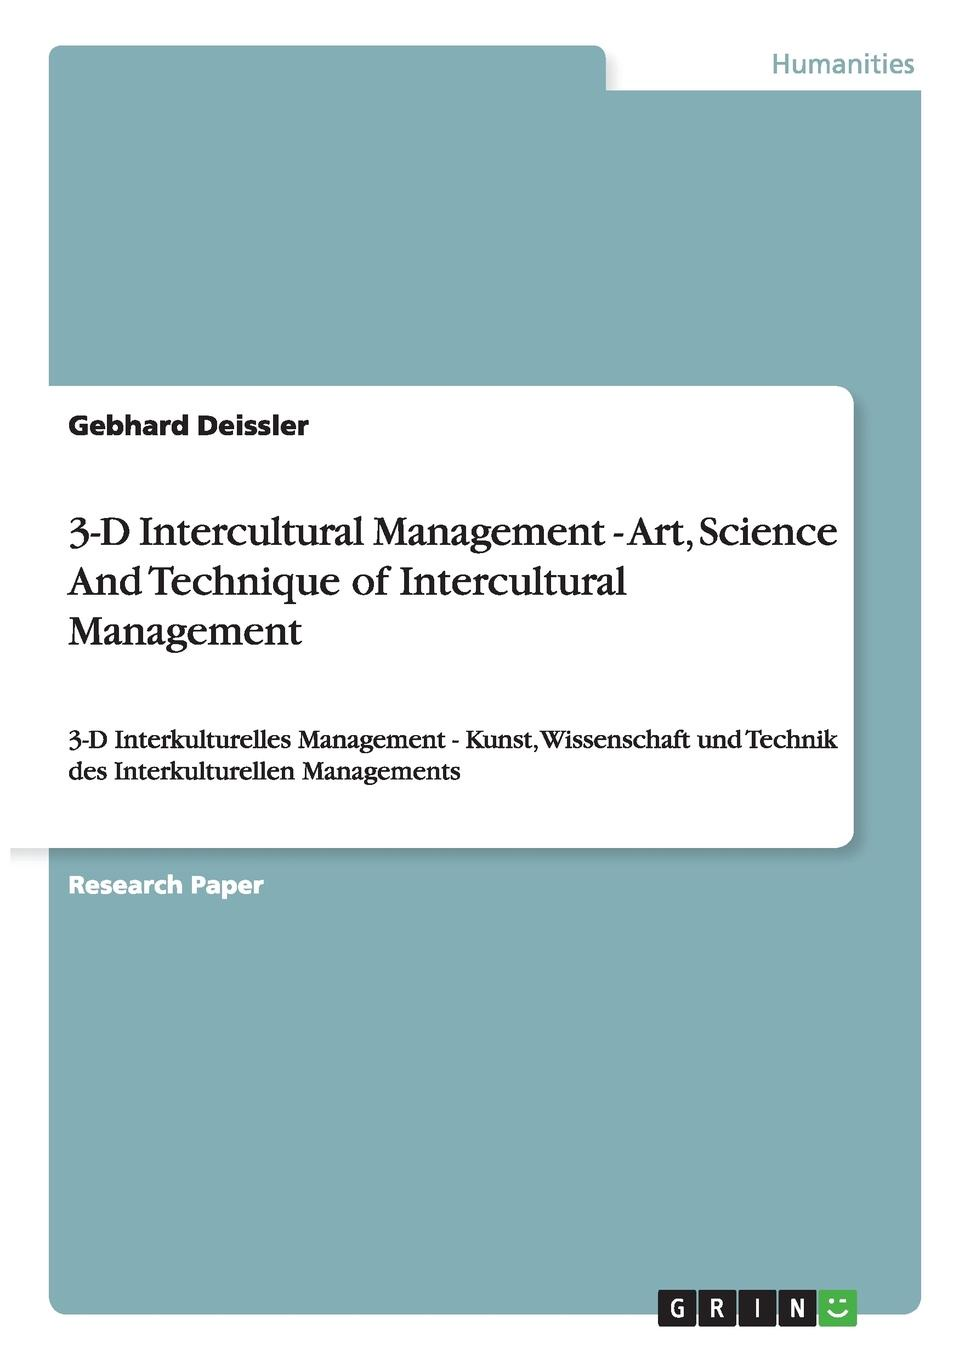 Gebhard Deissler 3-D Intercultural Management - Art, Science And Technique of Intercultural Management the pomodoro technique the life changing time management system